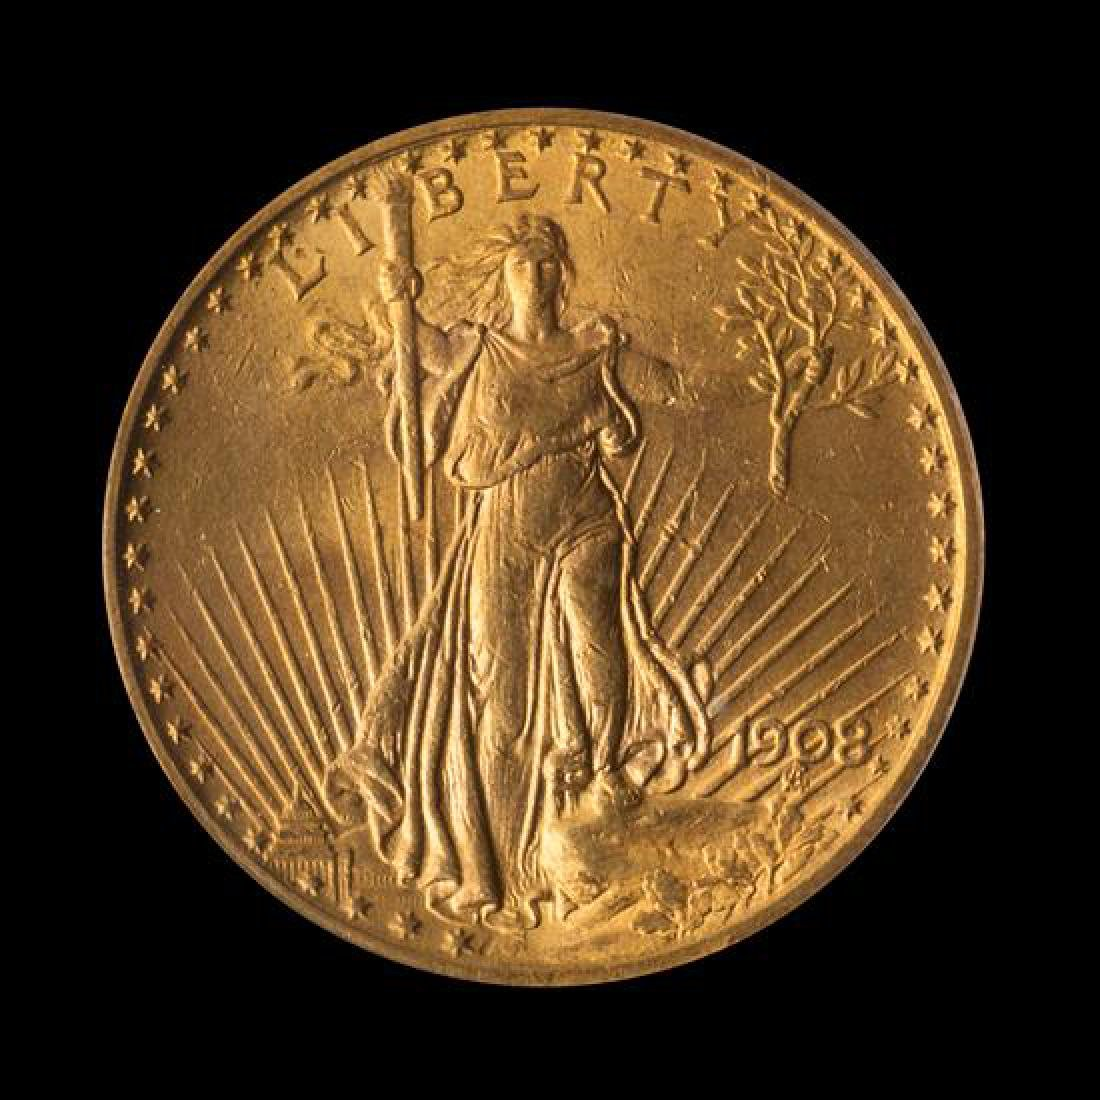 A United States 1908 Saint-Gaudens: Motto $20 Gold Coin